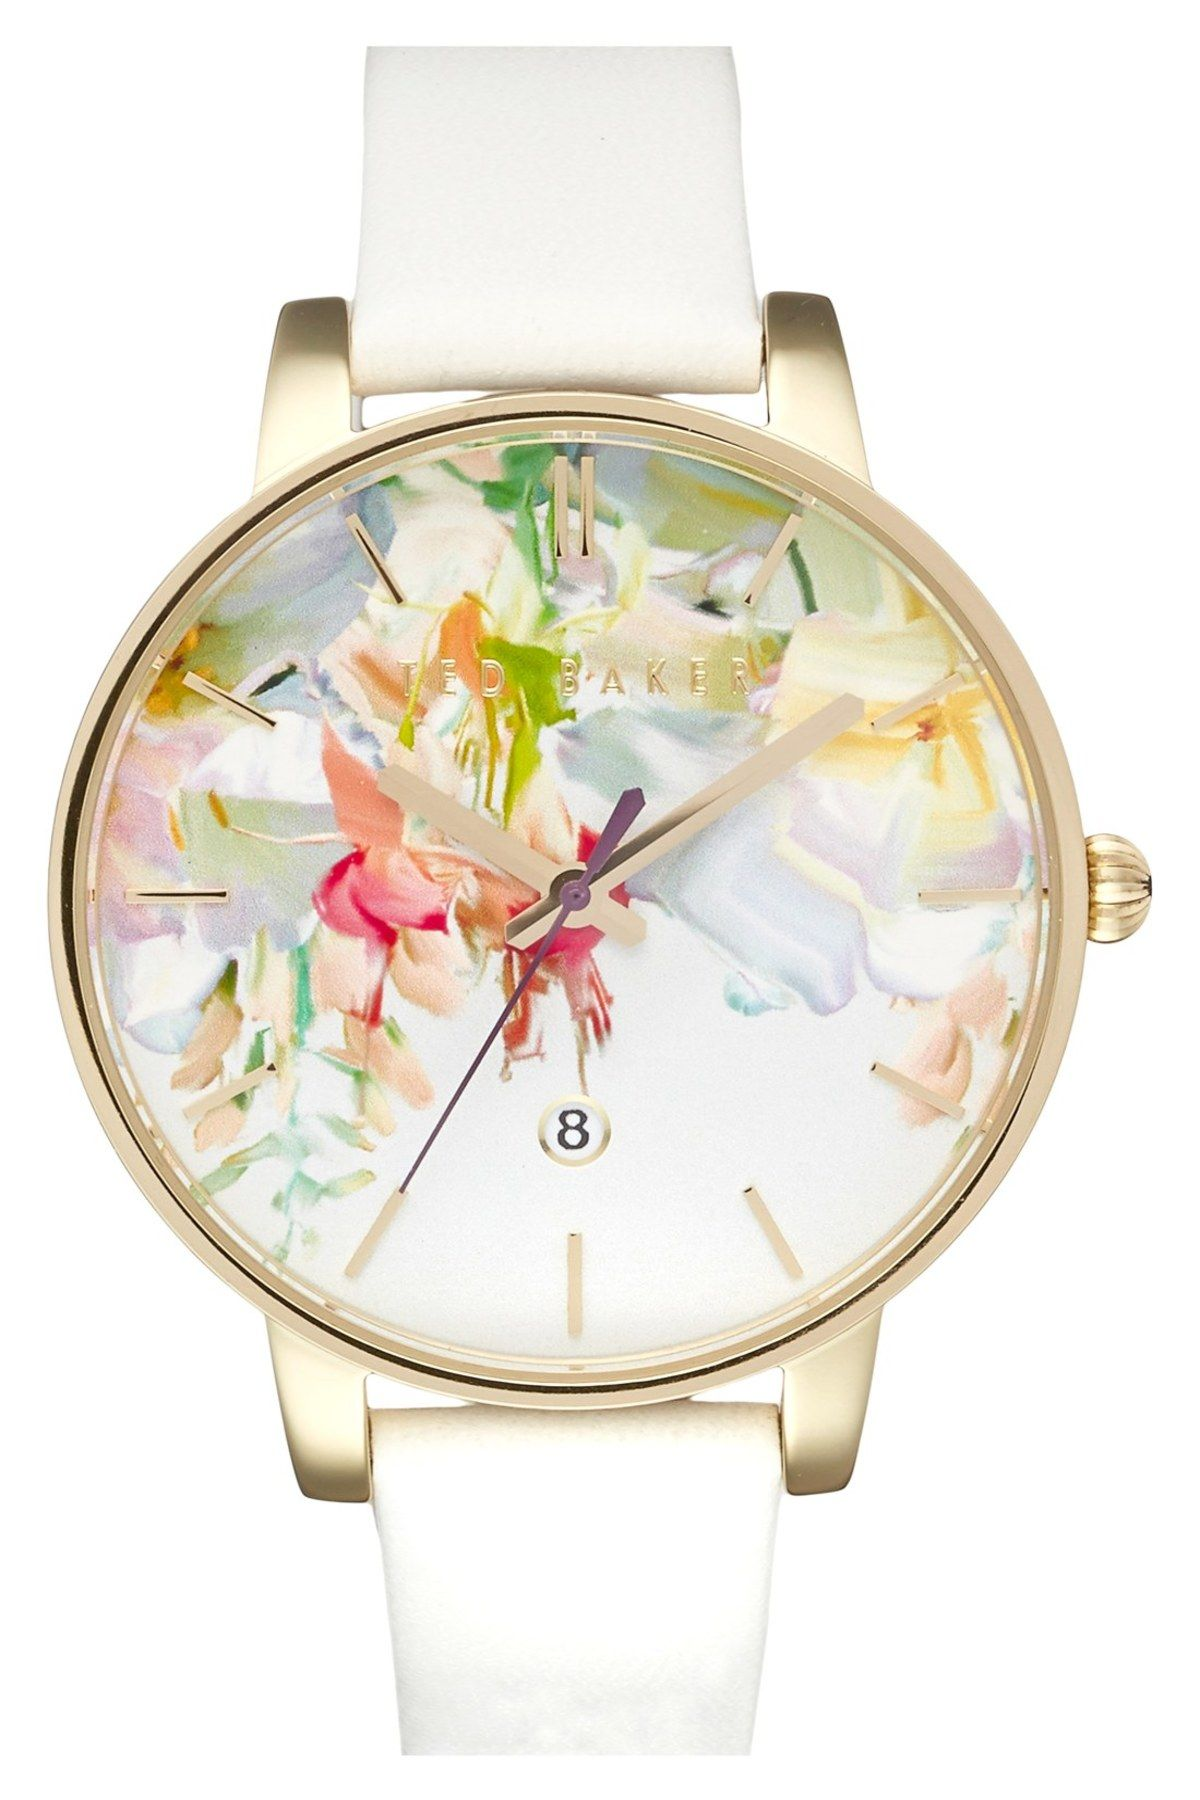 women leather kate ted buyted lewis online pdp watches johnlewis floral strap main watch rsp baker at s pink john gold